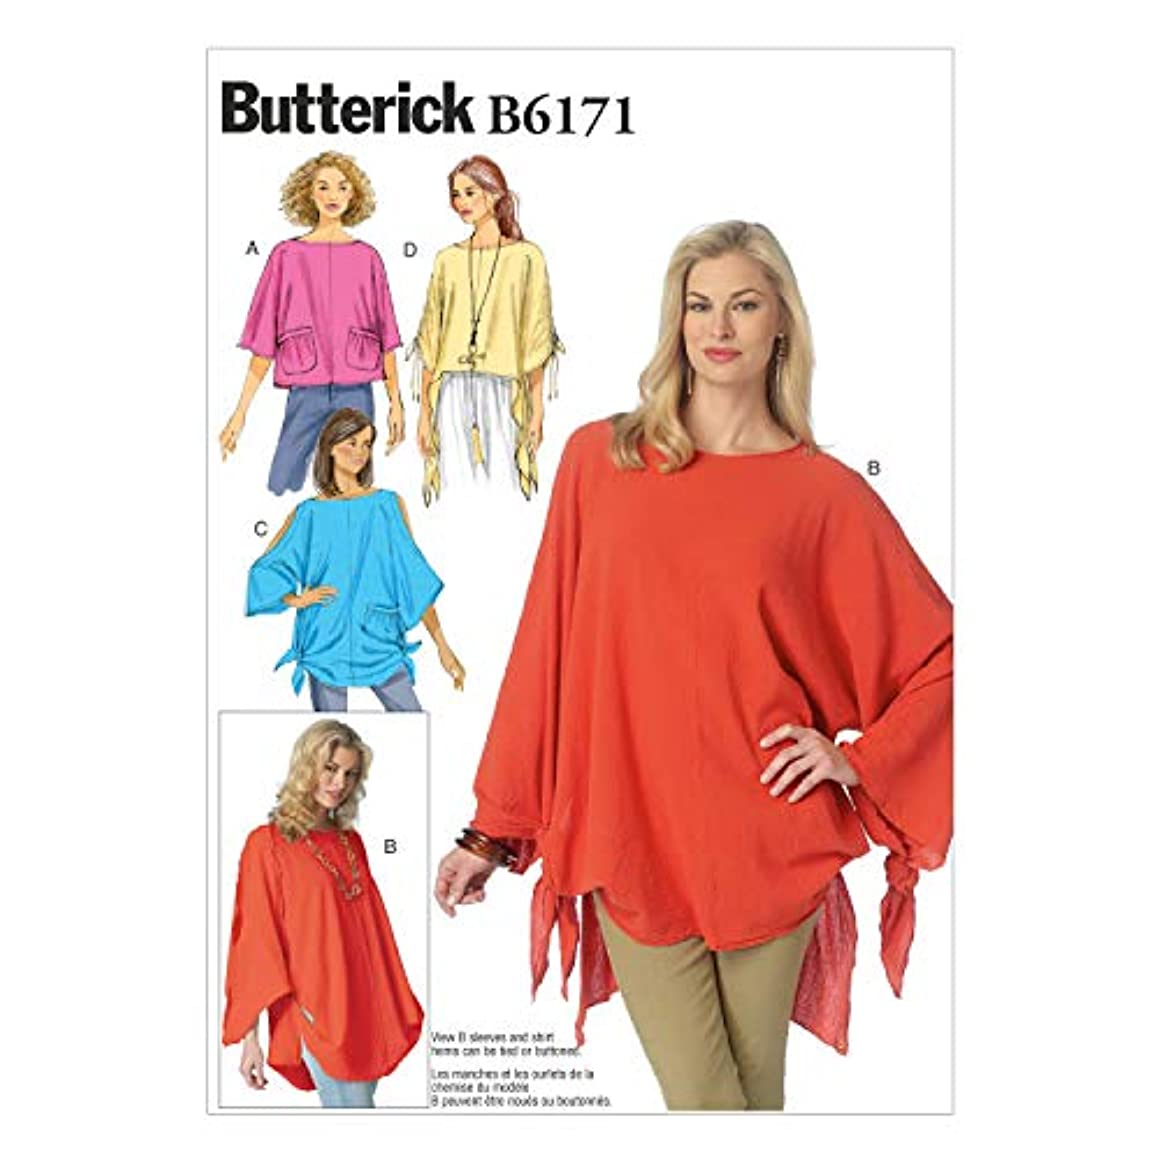 BUTTERICK PATTERNS B6171ZZ0 Misses' Tunic Sewing Template, ZZ (LRG-XLG-XXL)